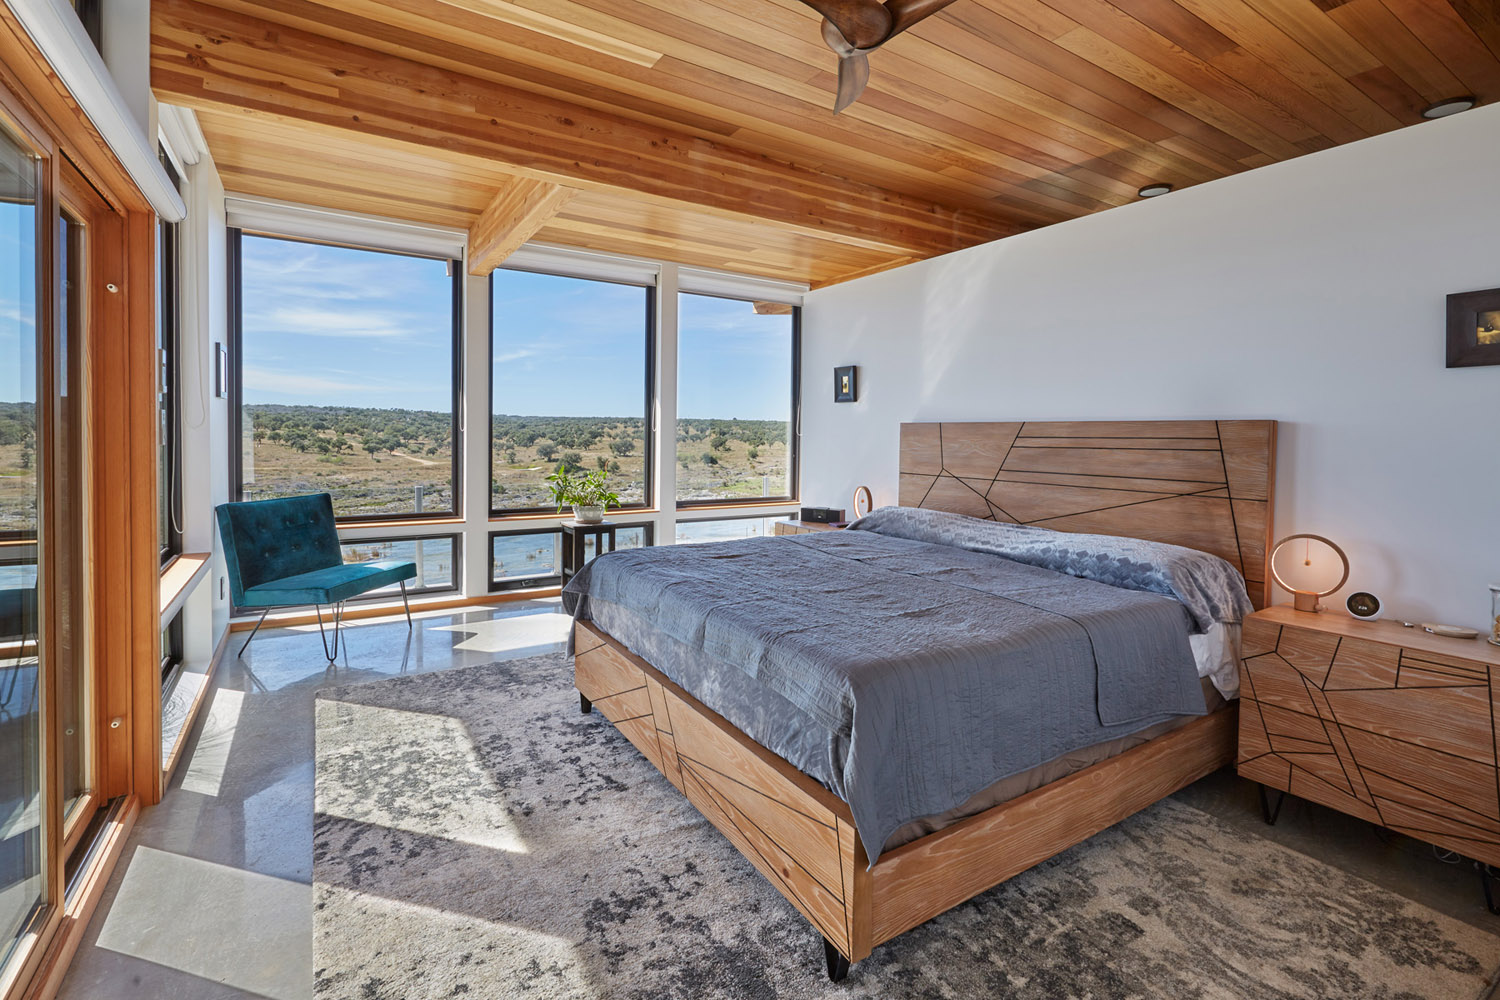 Master bedroom at Jeff Derebery's custom Lindal Hestia home in the Texas Hill Country, Johnson City